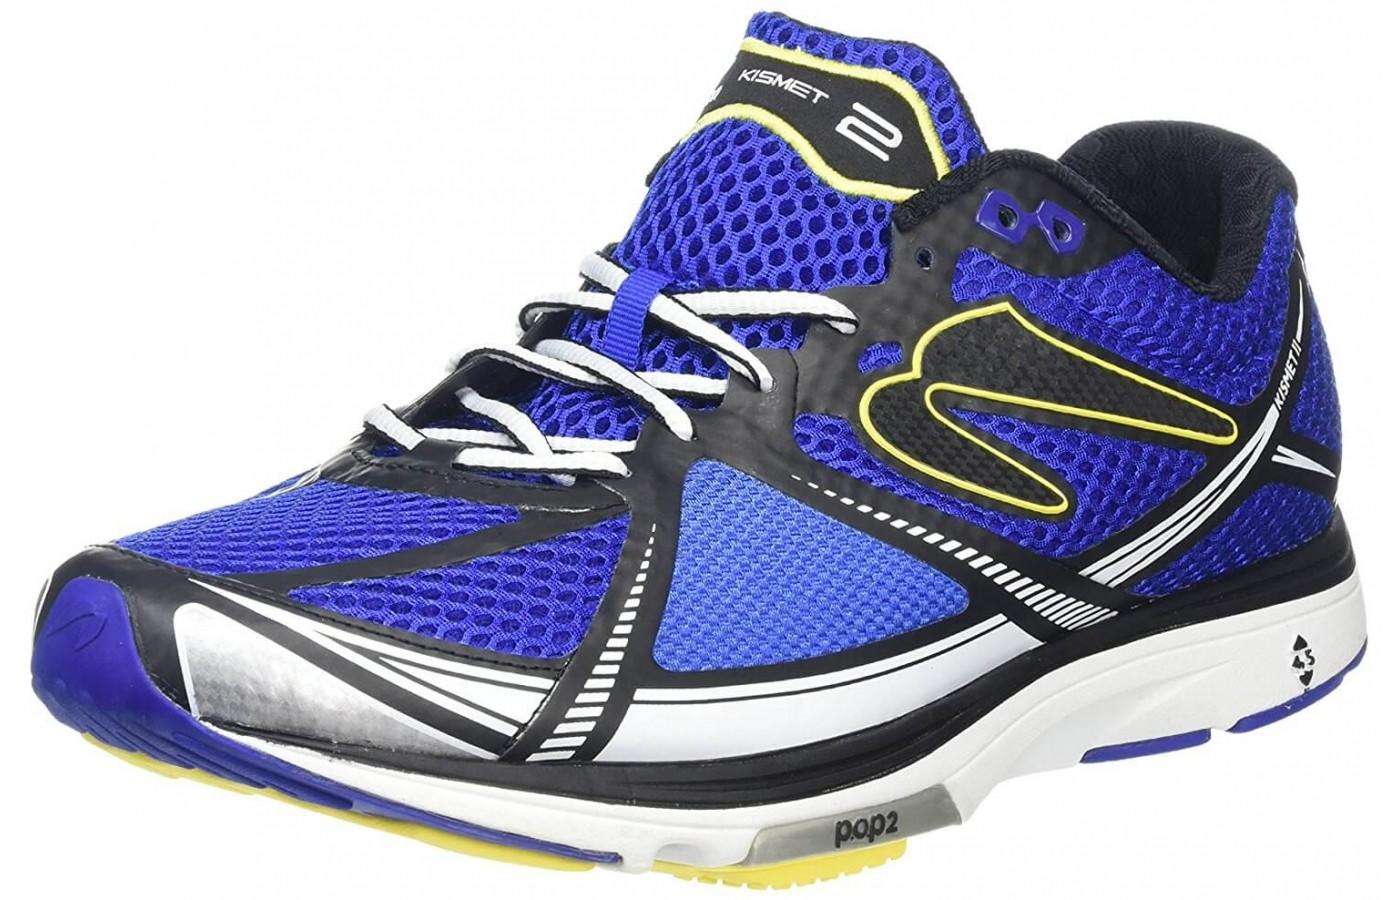 The Newton Kismet II is the perfect stability shoe for the runner looking for a lower heel drop.